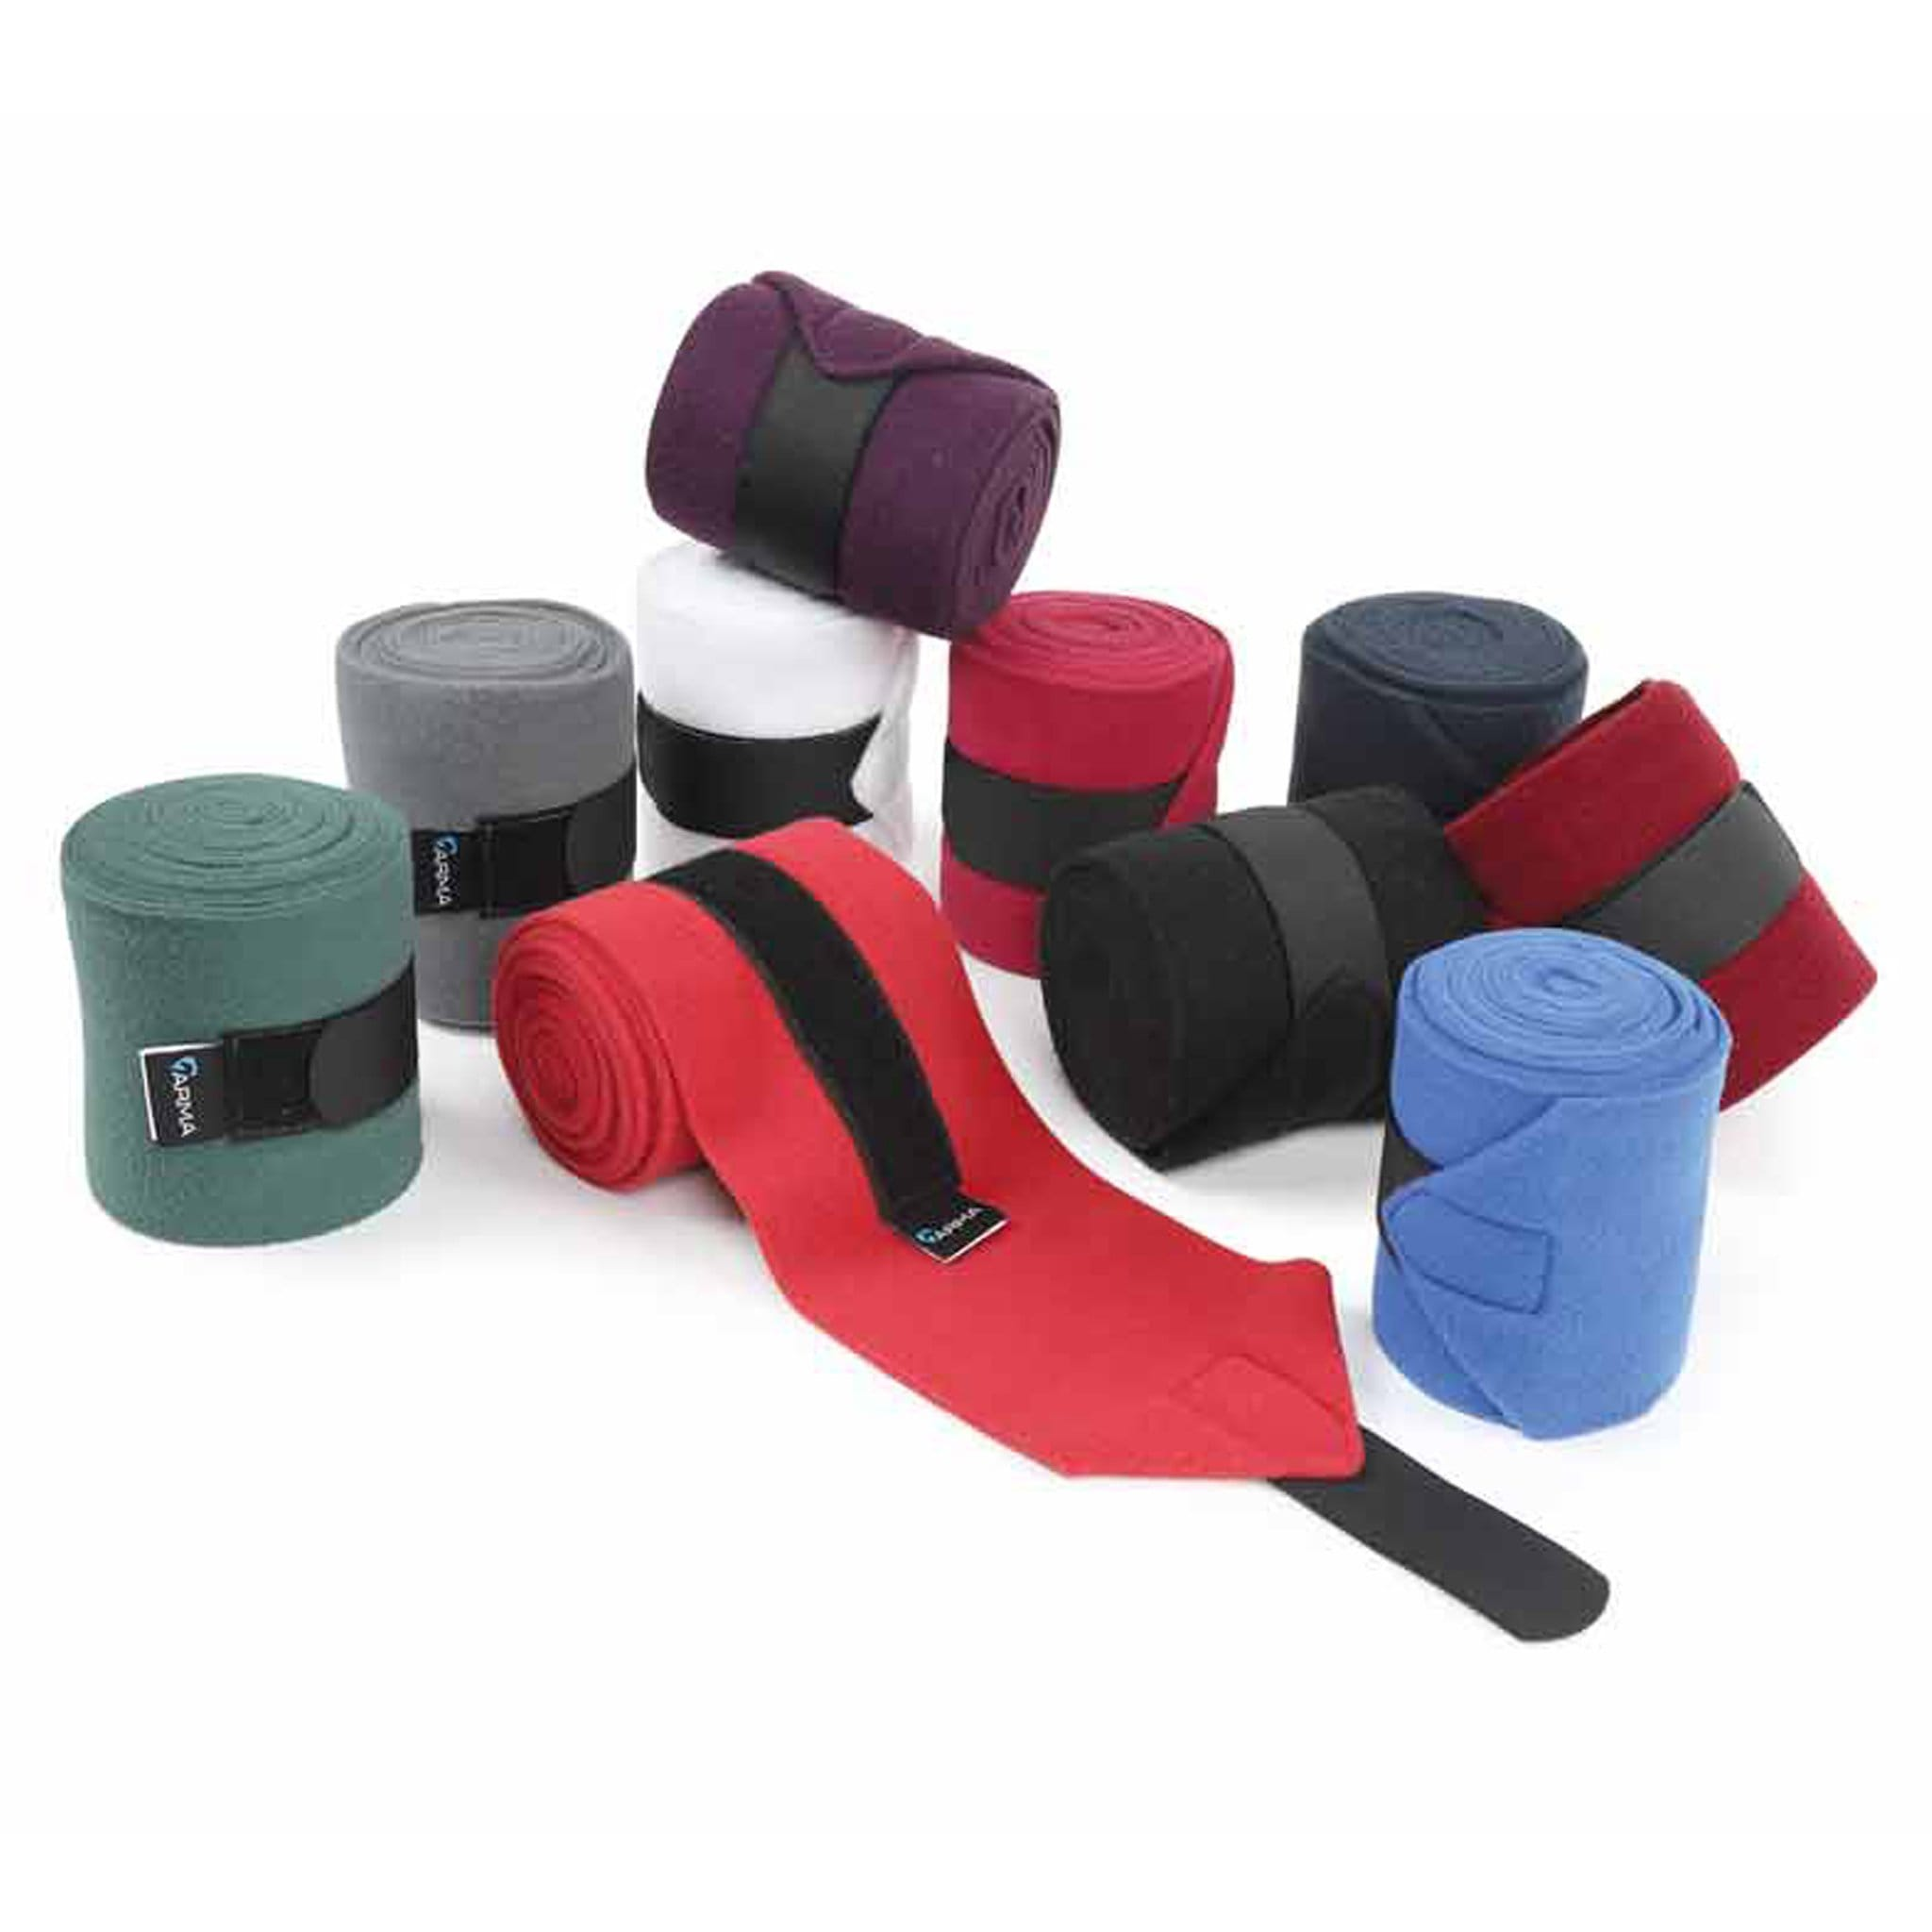 Shires Fleece Bandages 155 All Colours - Black, Navy, Red, Pink, Purple, Green, Grey, Royal Blue, Burgundy, White